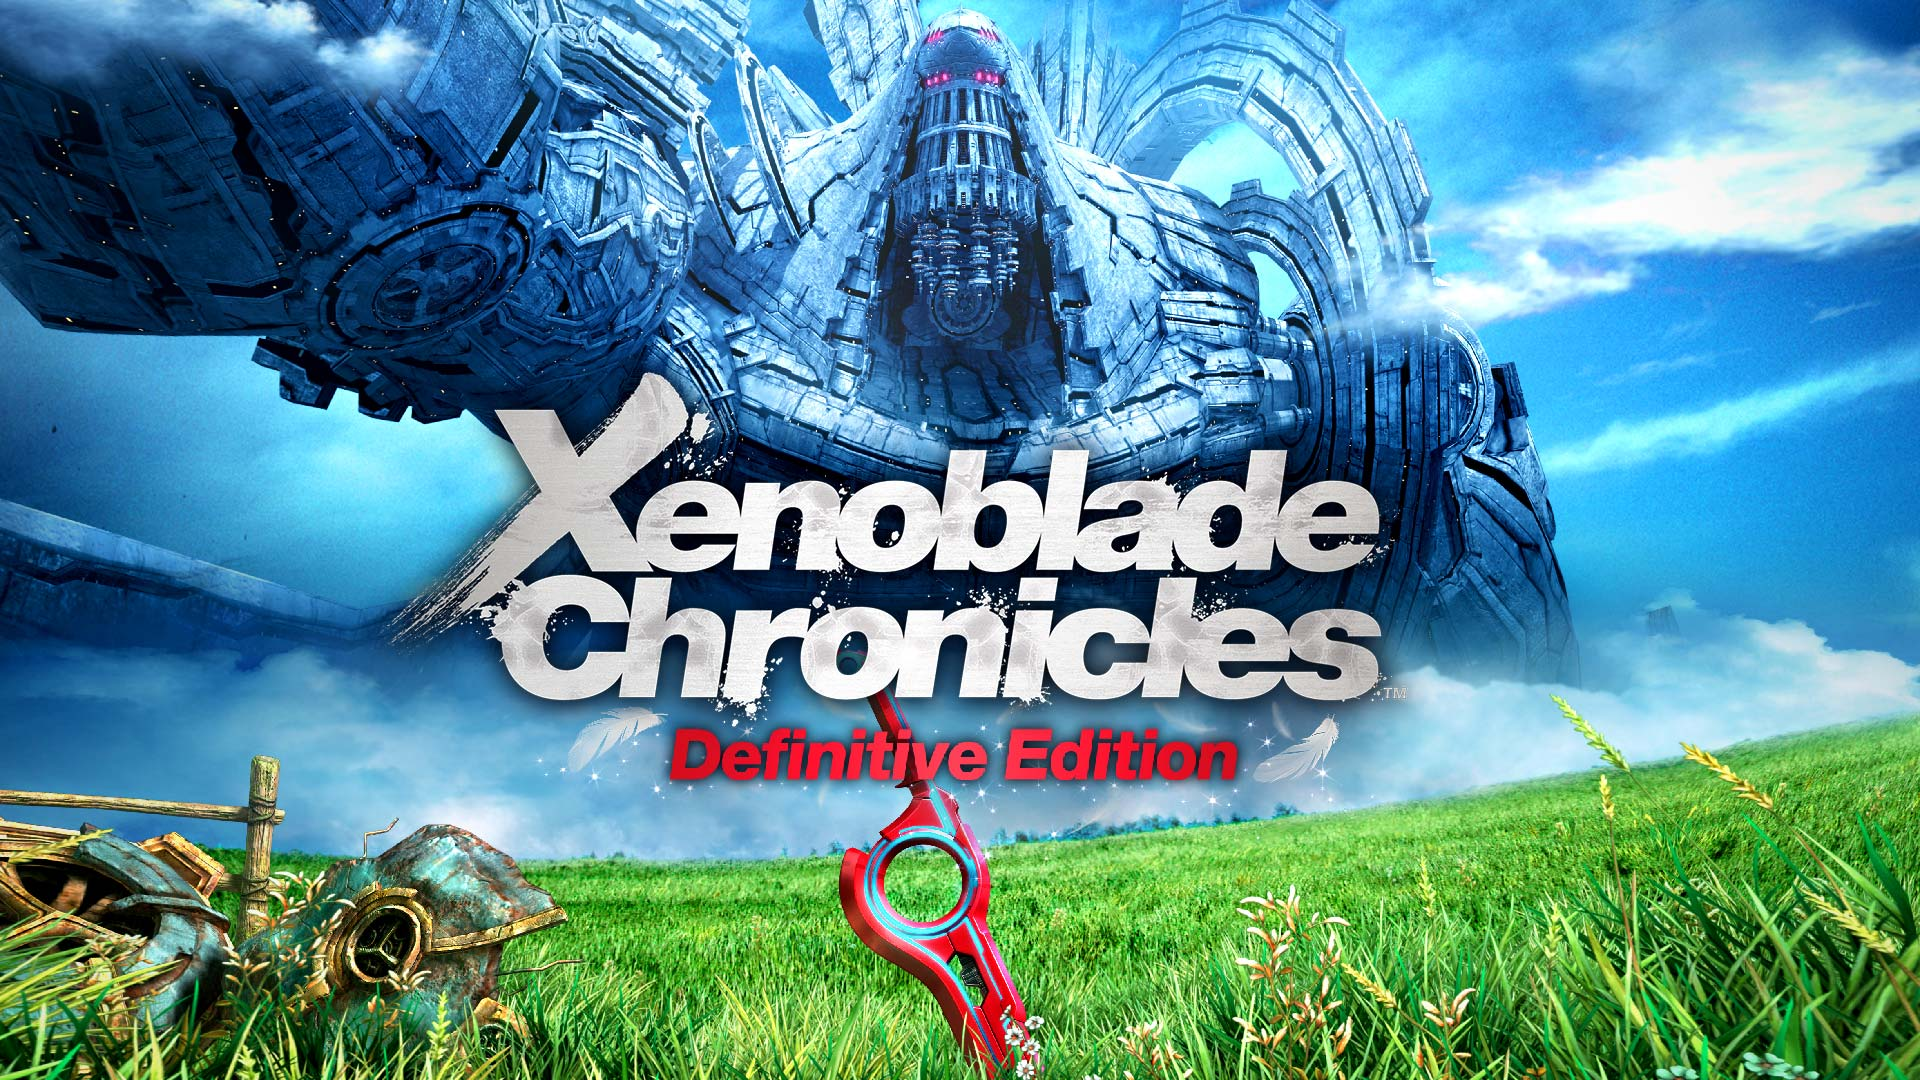 xenoblade chronicles, telethia